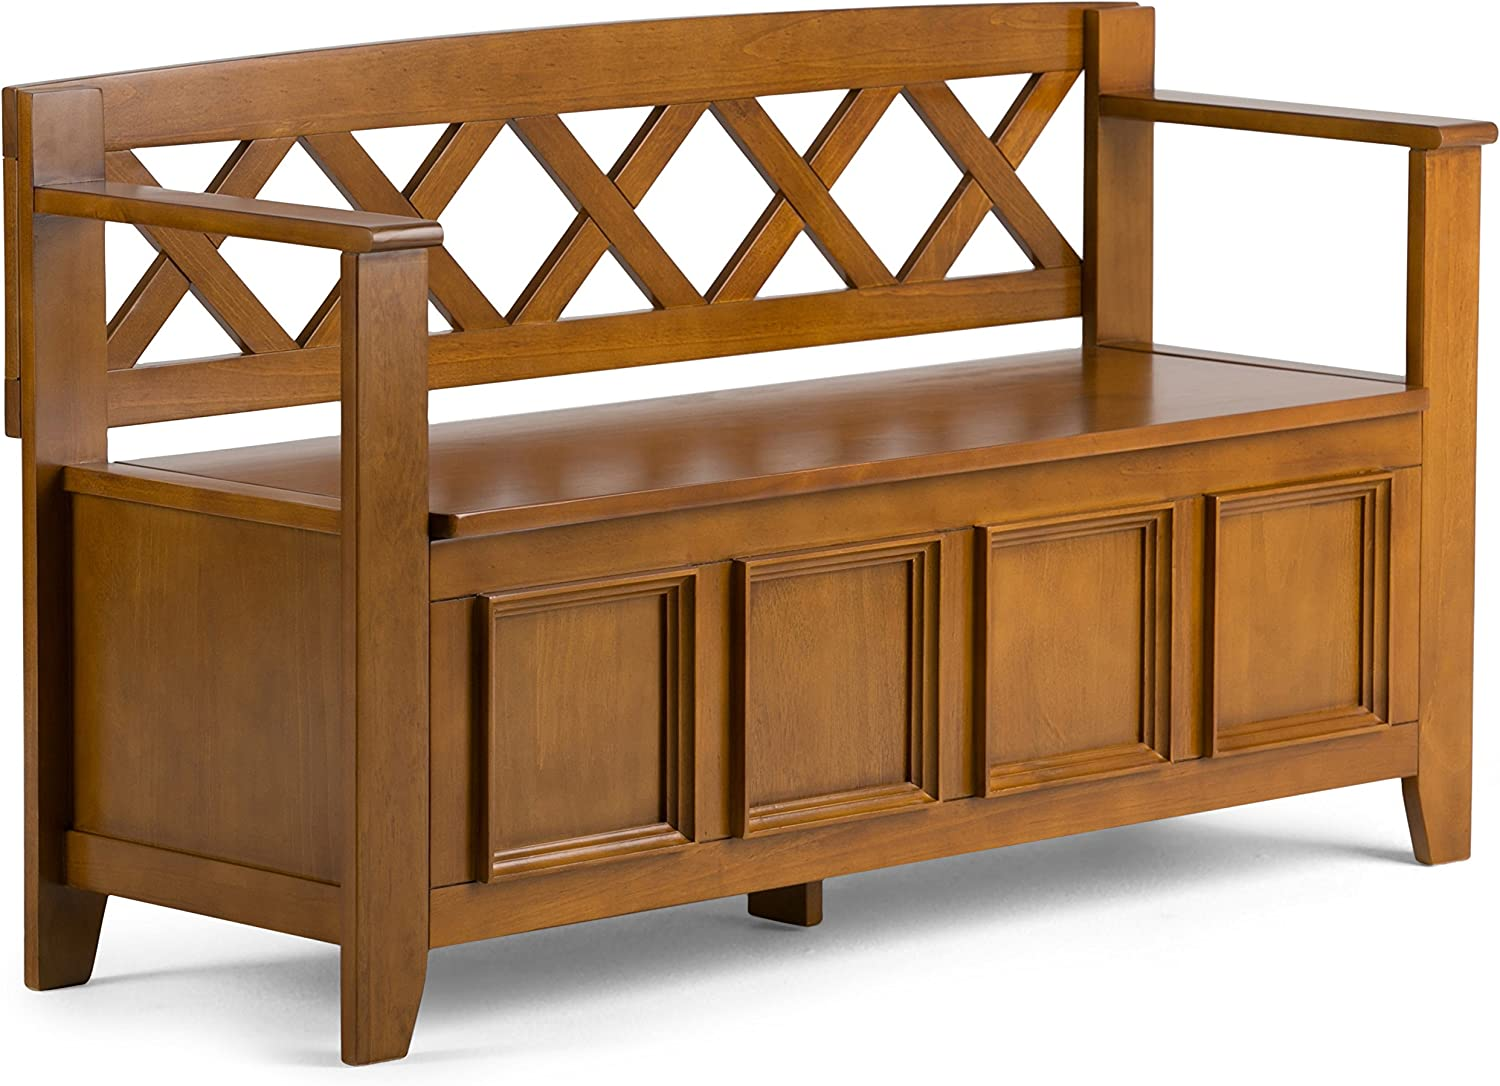 Simpli Home AXCAB-BNCH-ALB Amherst Solid Wood 48 inch wide Transitional Entryway Storage Bench in Light Avalon Brown